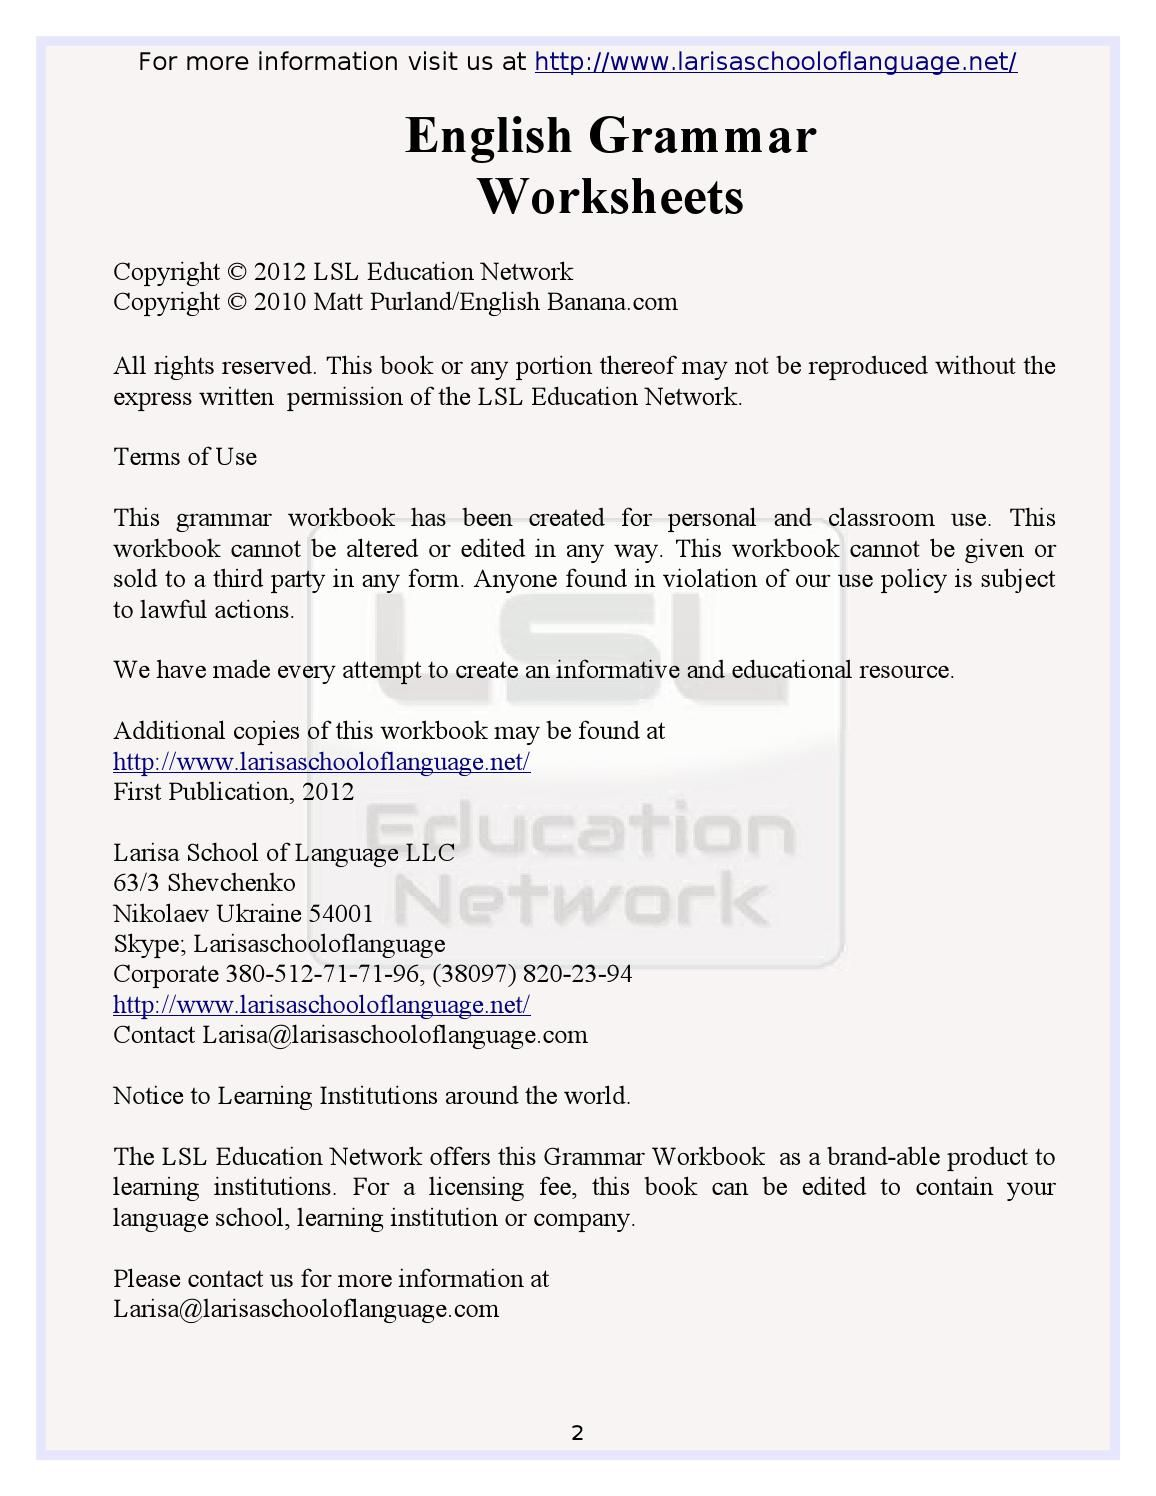 101 English Grammar Worksheets for English Learners | English ...